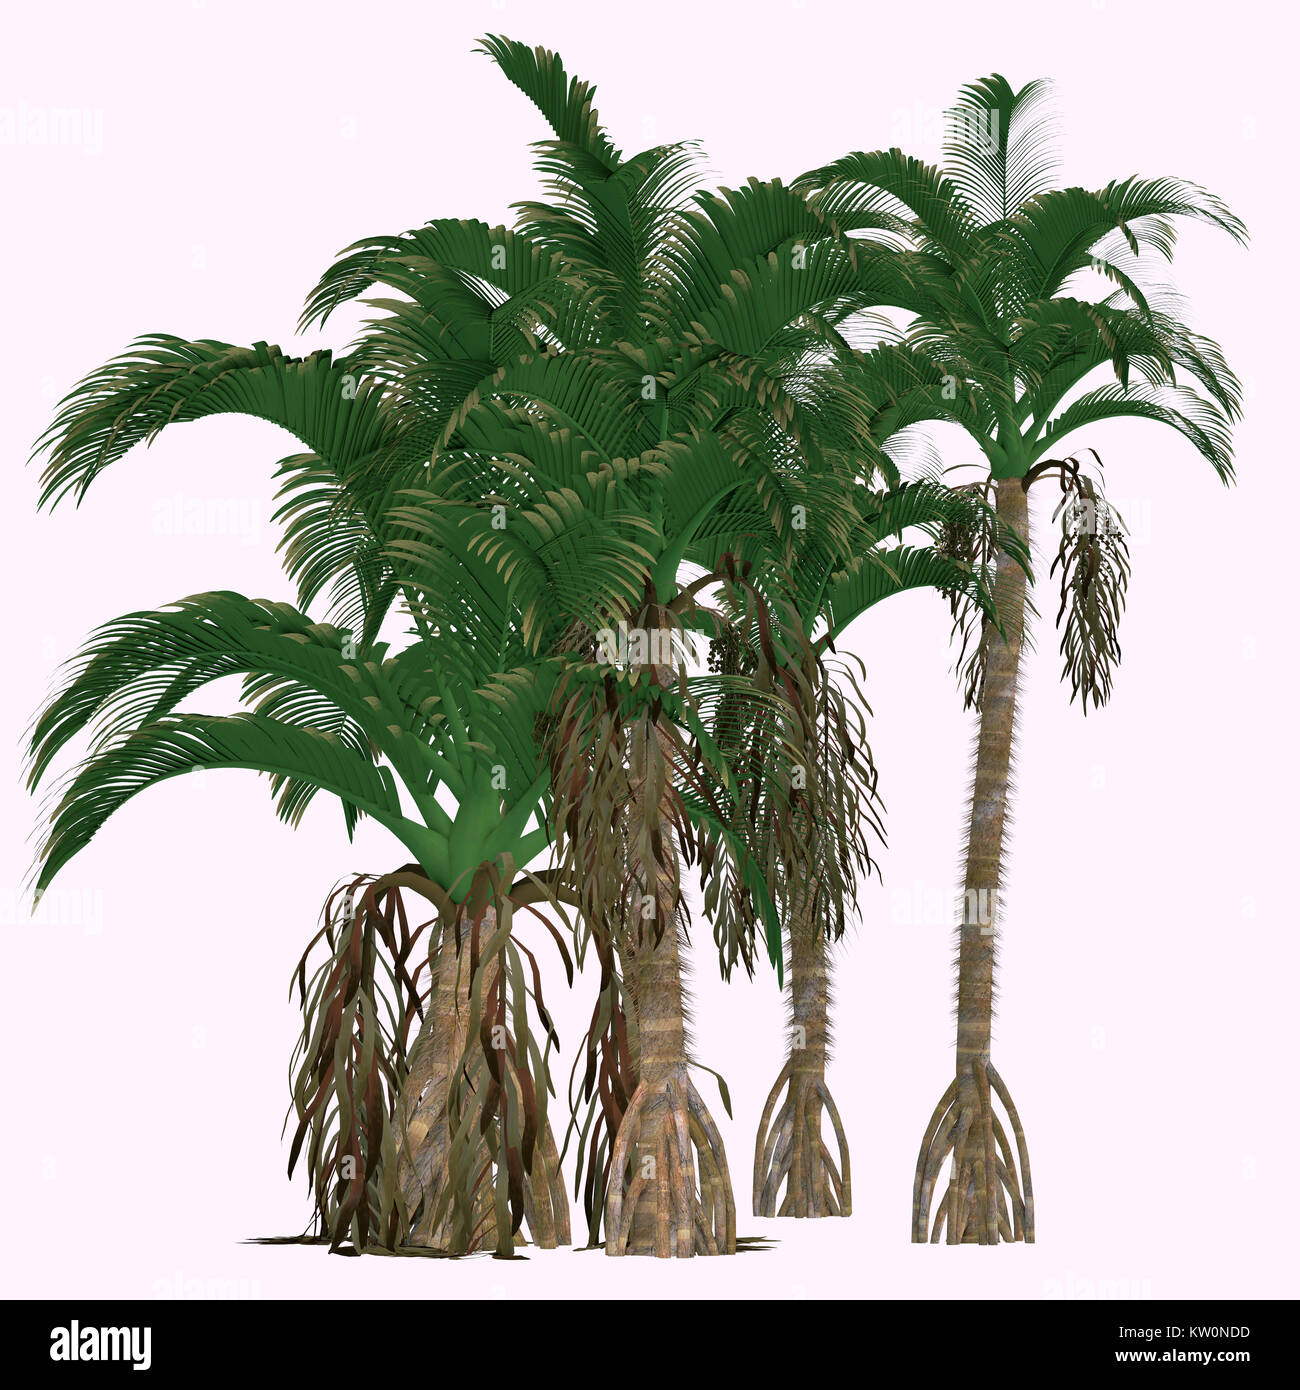 Verschaffeltia splendida Trees - This is a flowering palm endemic in the Seychelles and is a member of the genus - Stock Image